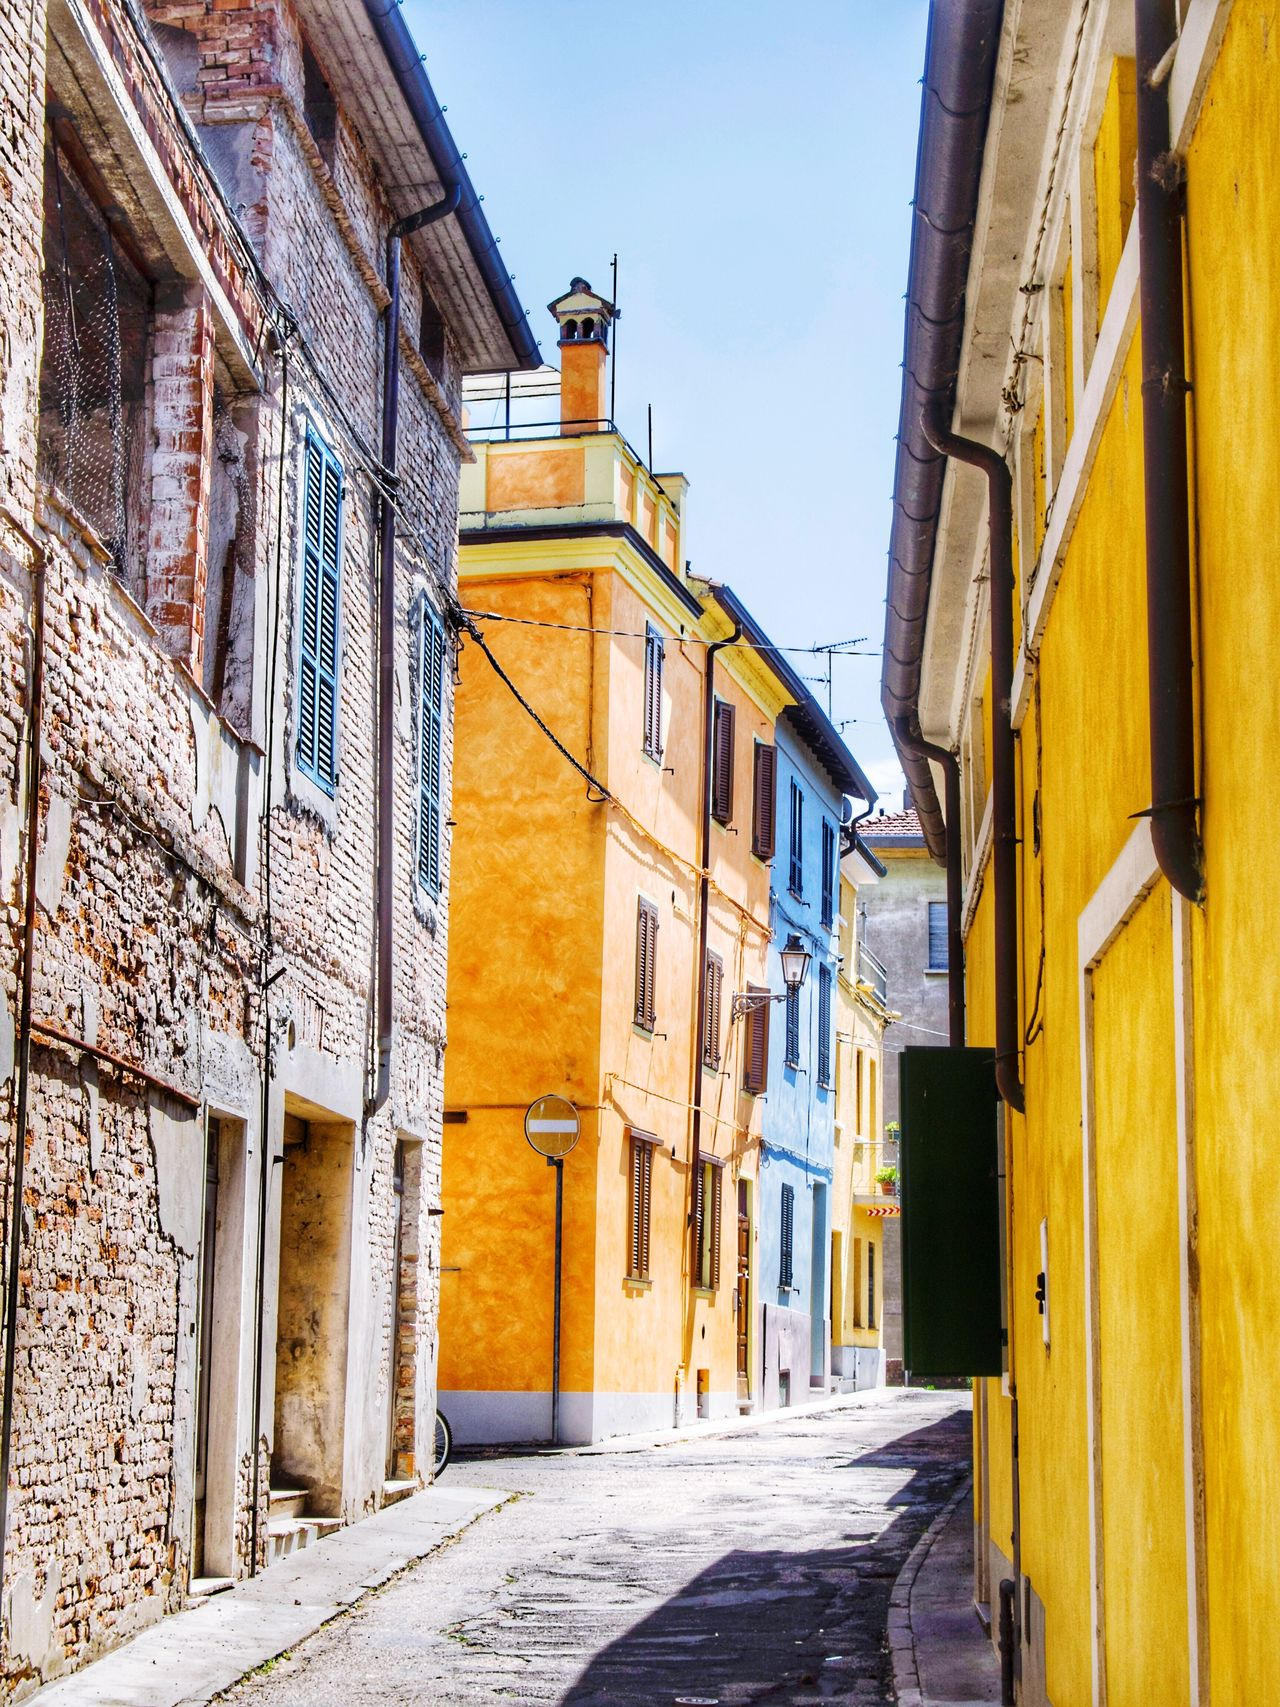 Old houses Architecture Building Exterior Built Structure Outdoors Day No People The Way Forward Sky City Busseto Parma Italy